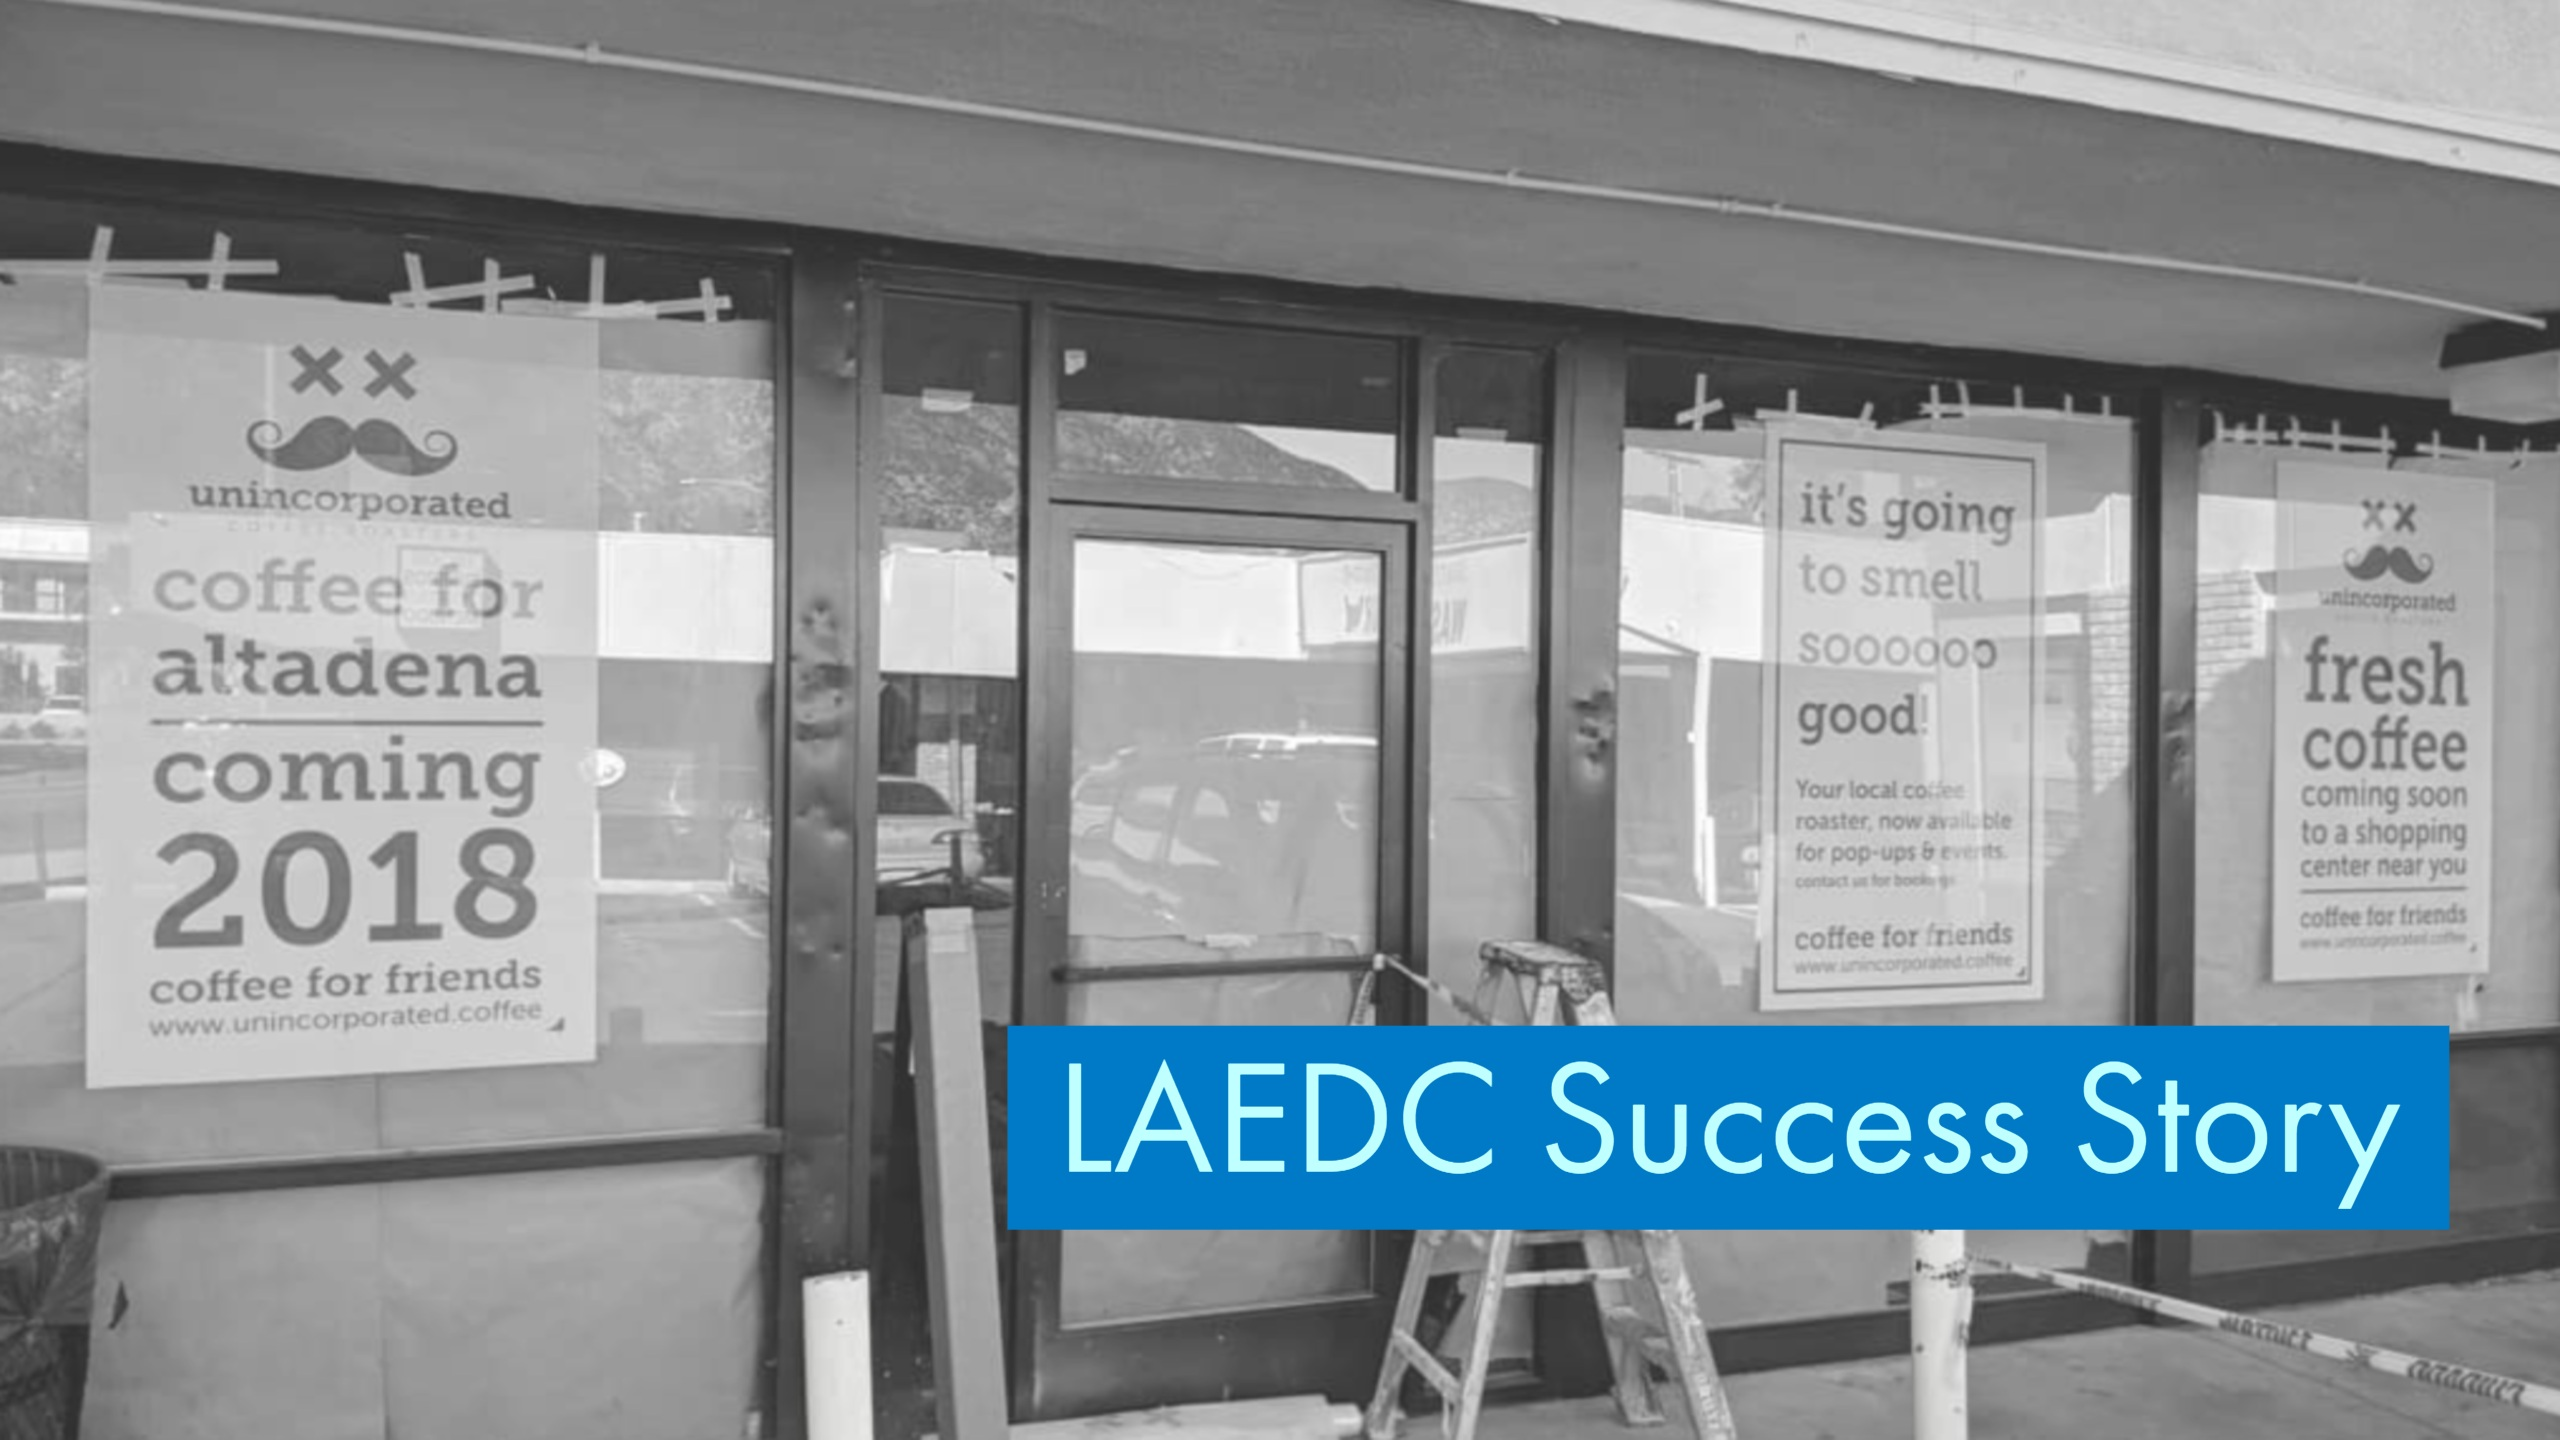 LAEDC Success Story